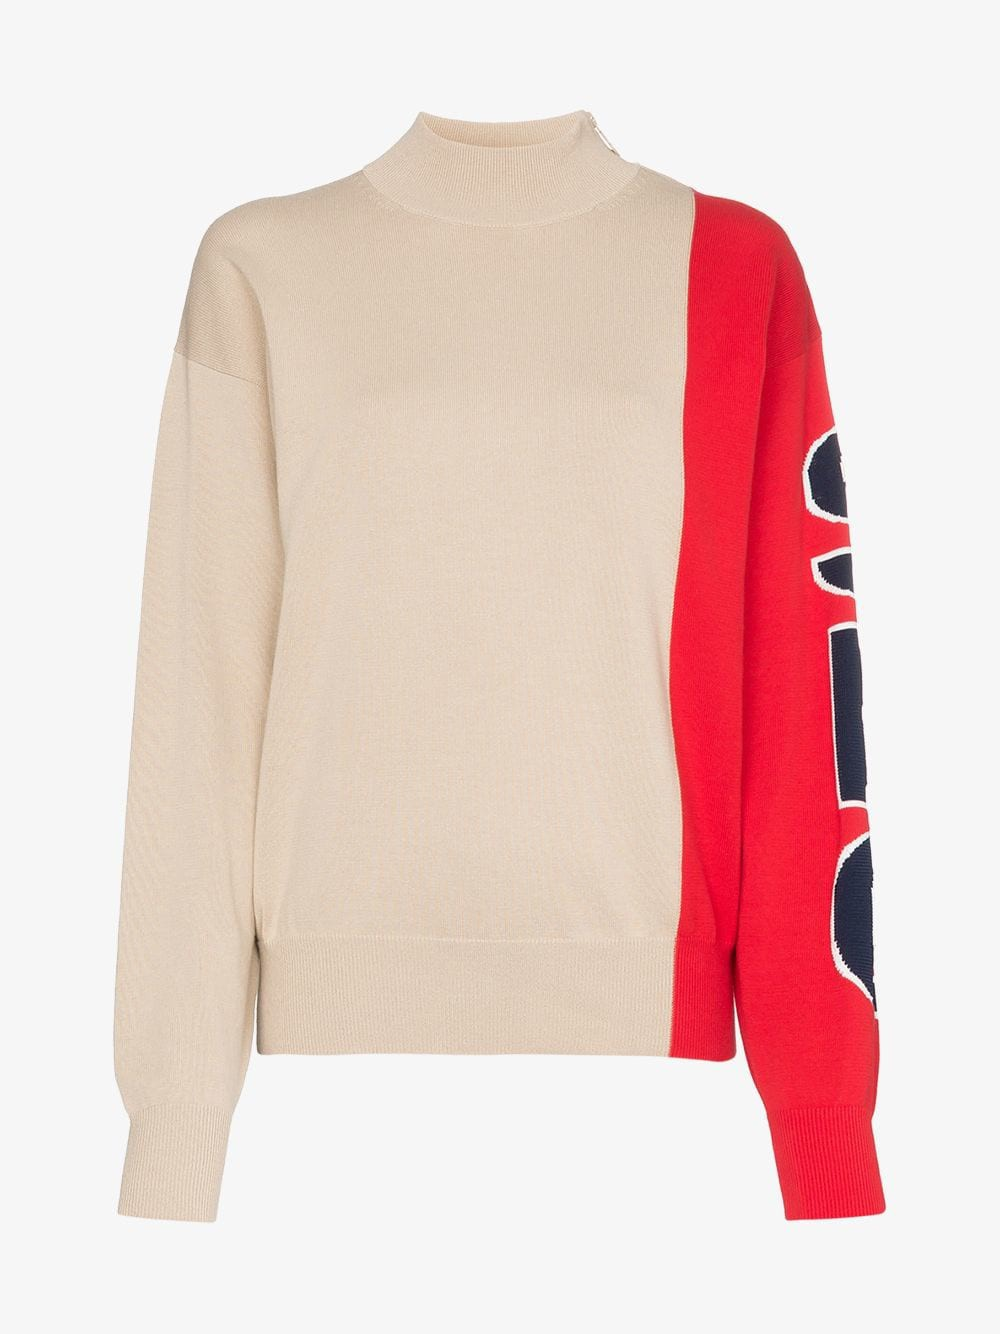 See By Chloé See By Chloé colour-block logo-sleeve side-zip jumper in beige